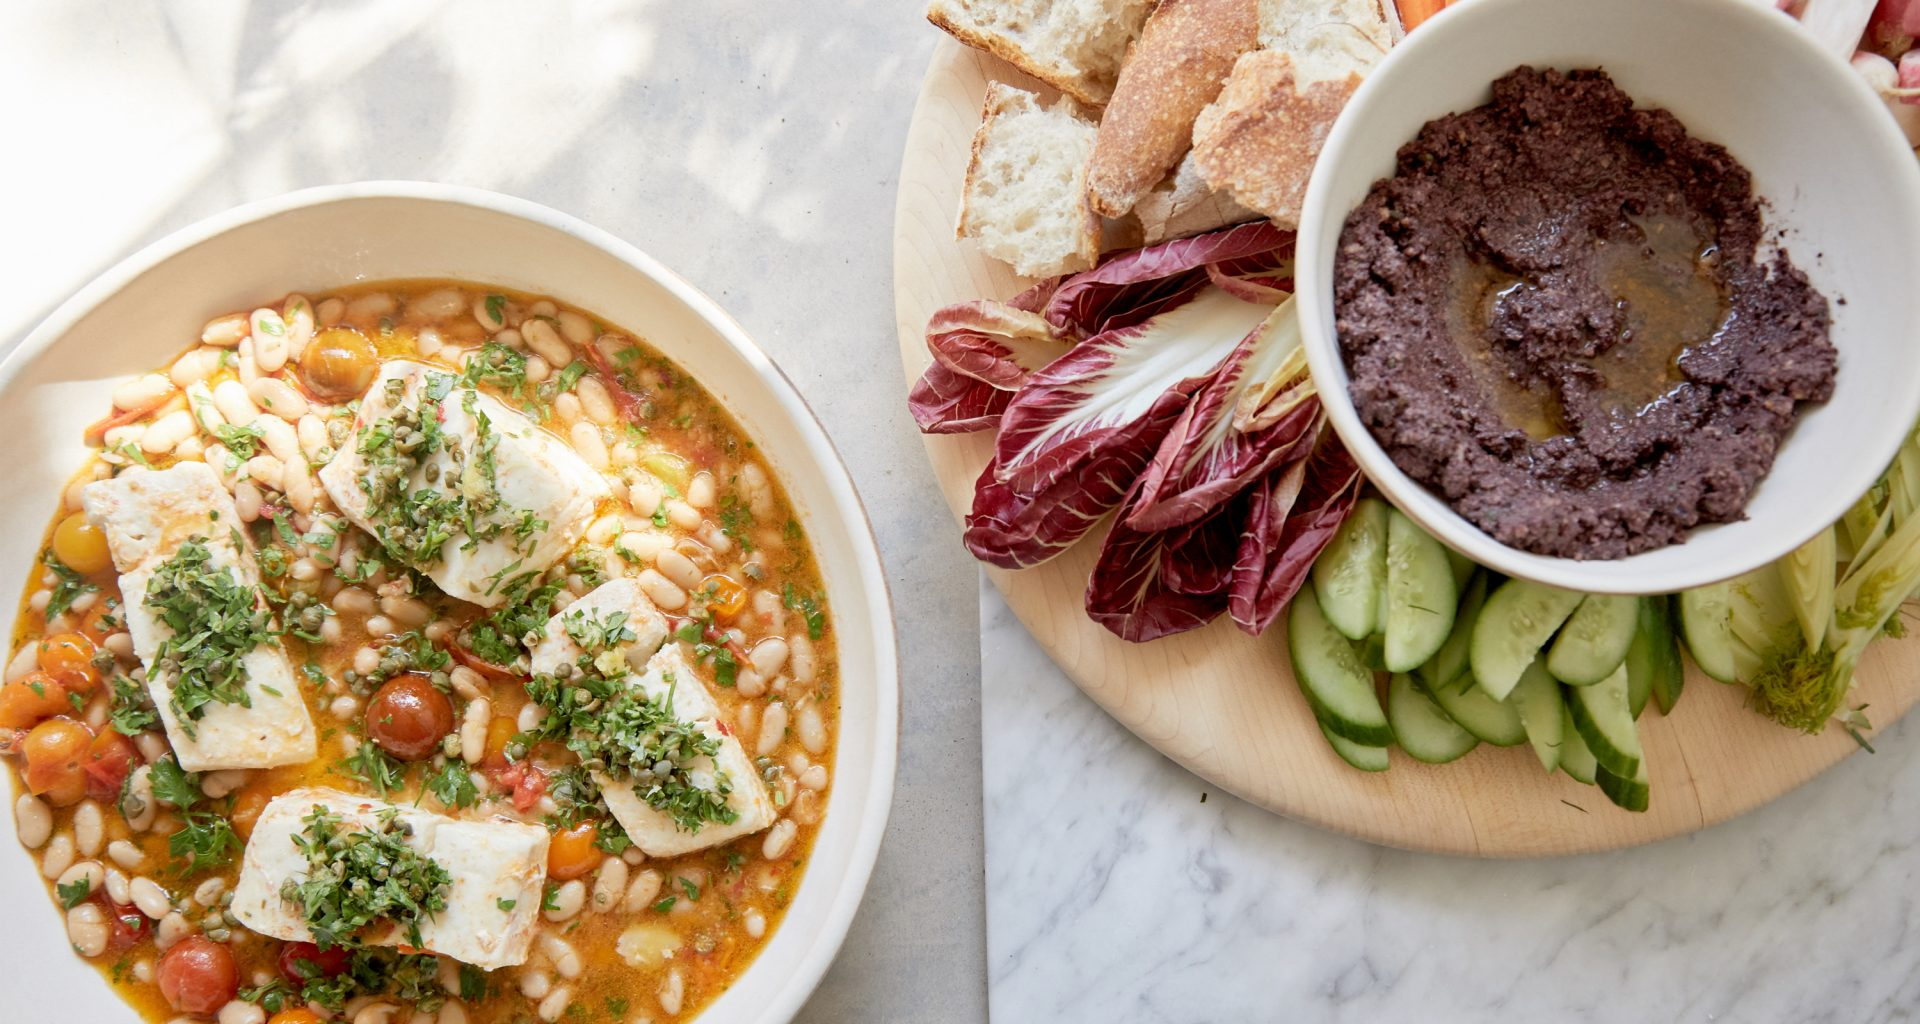 This Perfect Dinner Menu Makes the Most of Summer's Best Produce